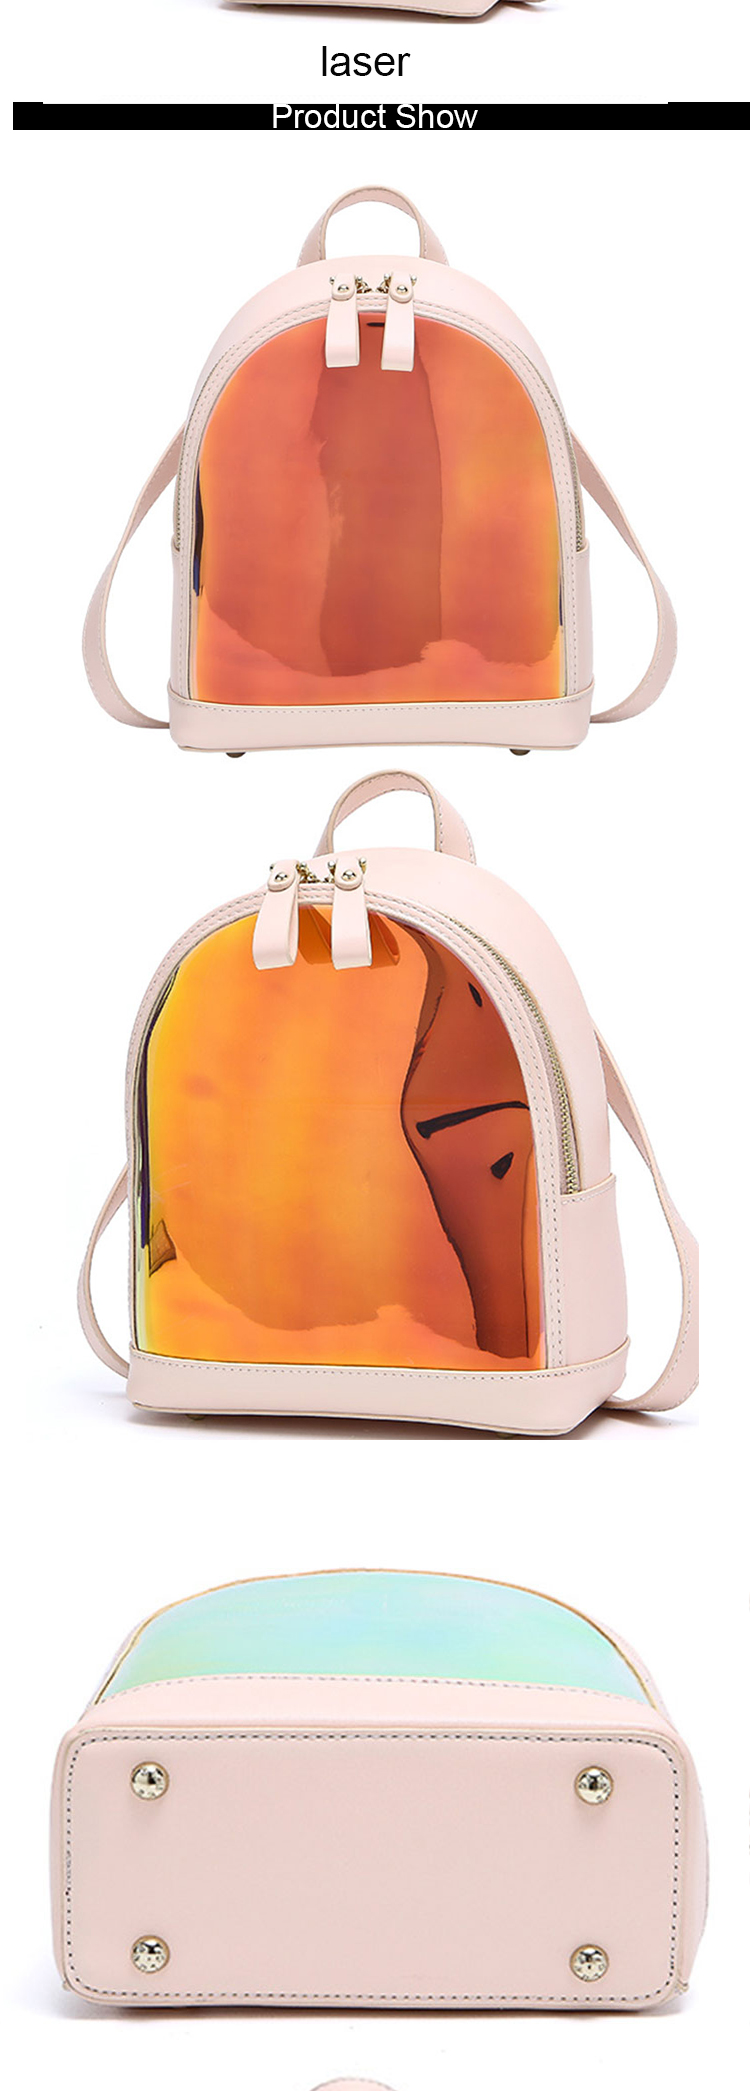 oem summer stylish laser color pvc cute small back packs mini school backpacks for ladies